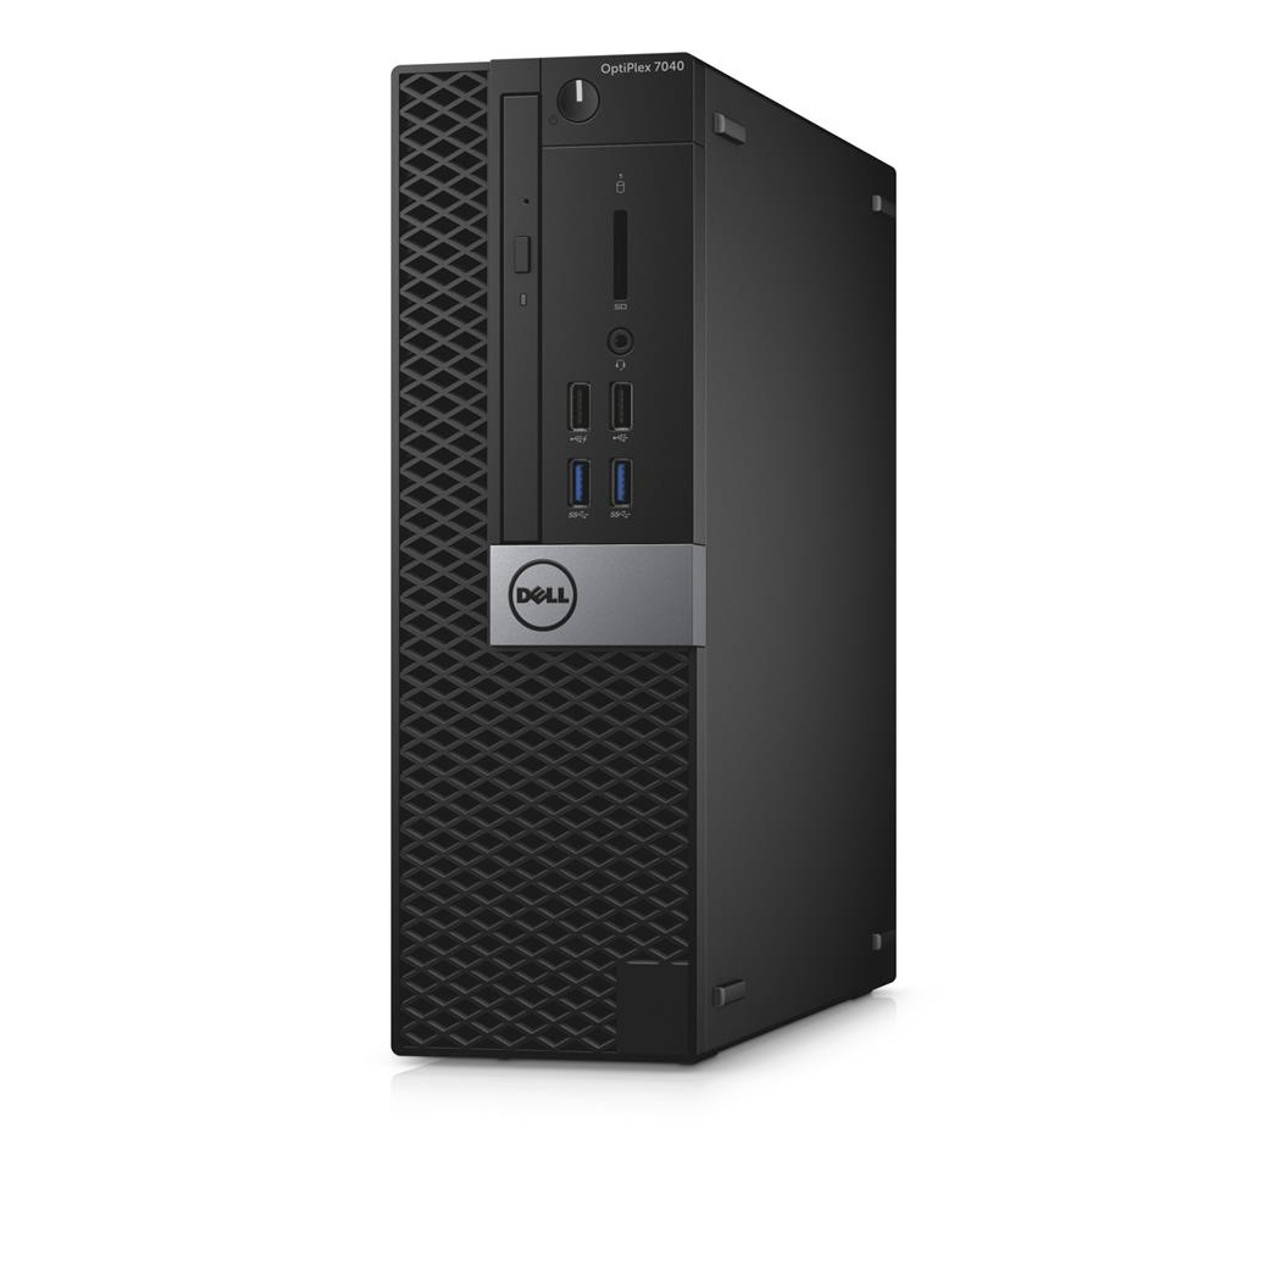 Dell Optiplex 7040 SFF Quad Core i5 3.2GHz, 8GB Ram, 500GB HDD, DVD-RW, Windows 10 Pro 64 Desktop Computer